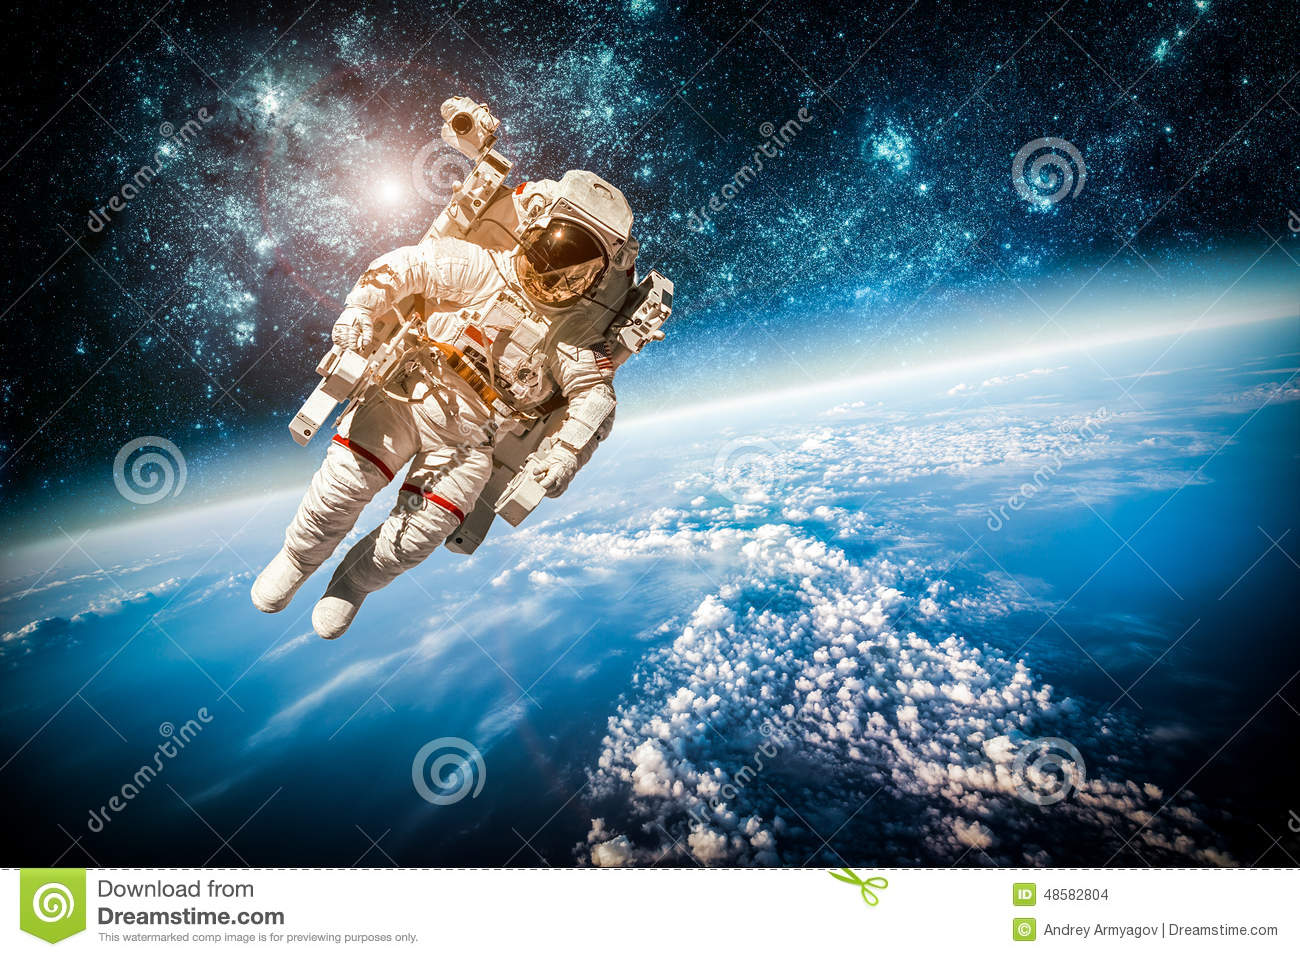 Astronaut in outer space